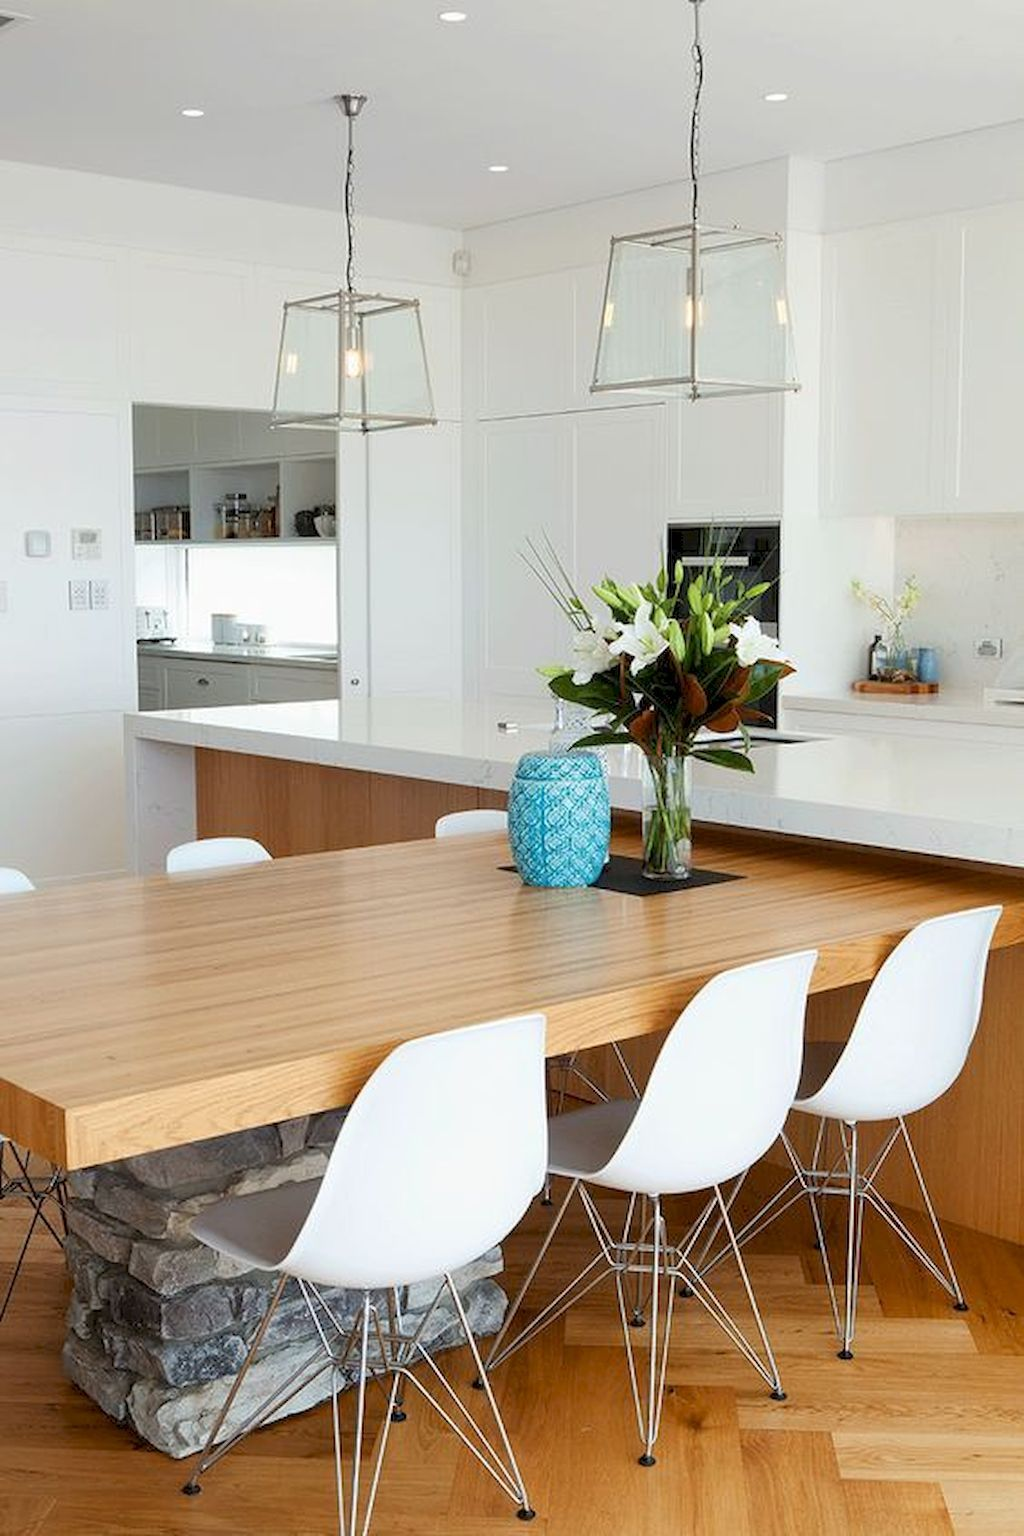 Stunning Small Island Kitchen Table Ideas Home To Z Kitchen Island Table Kitchen Design Small Kitchen Island With Seating